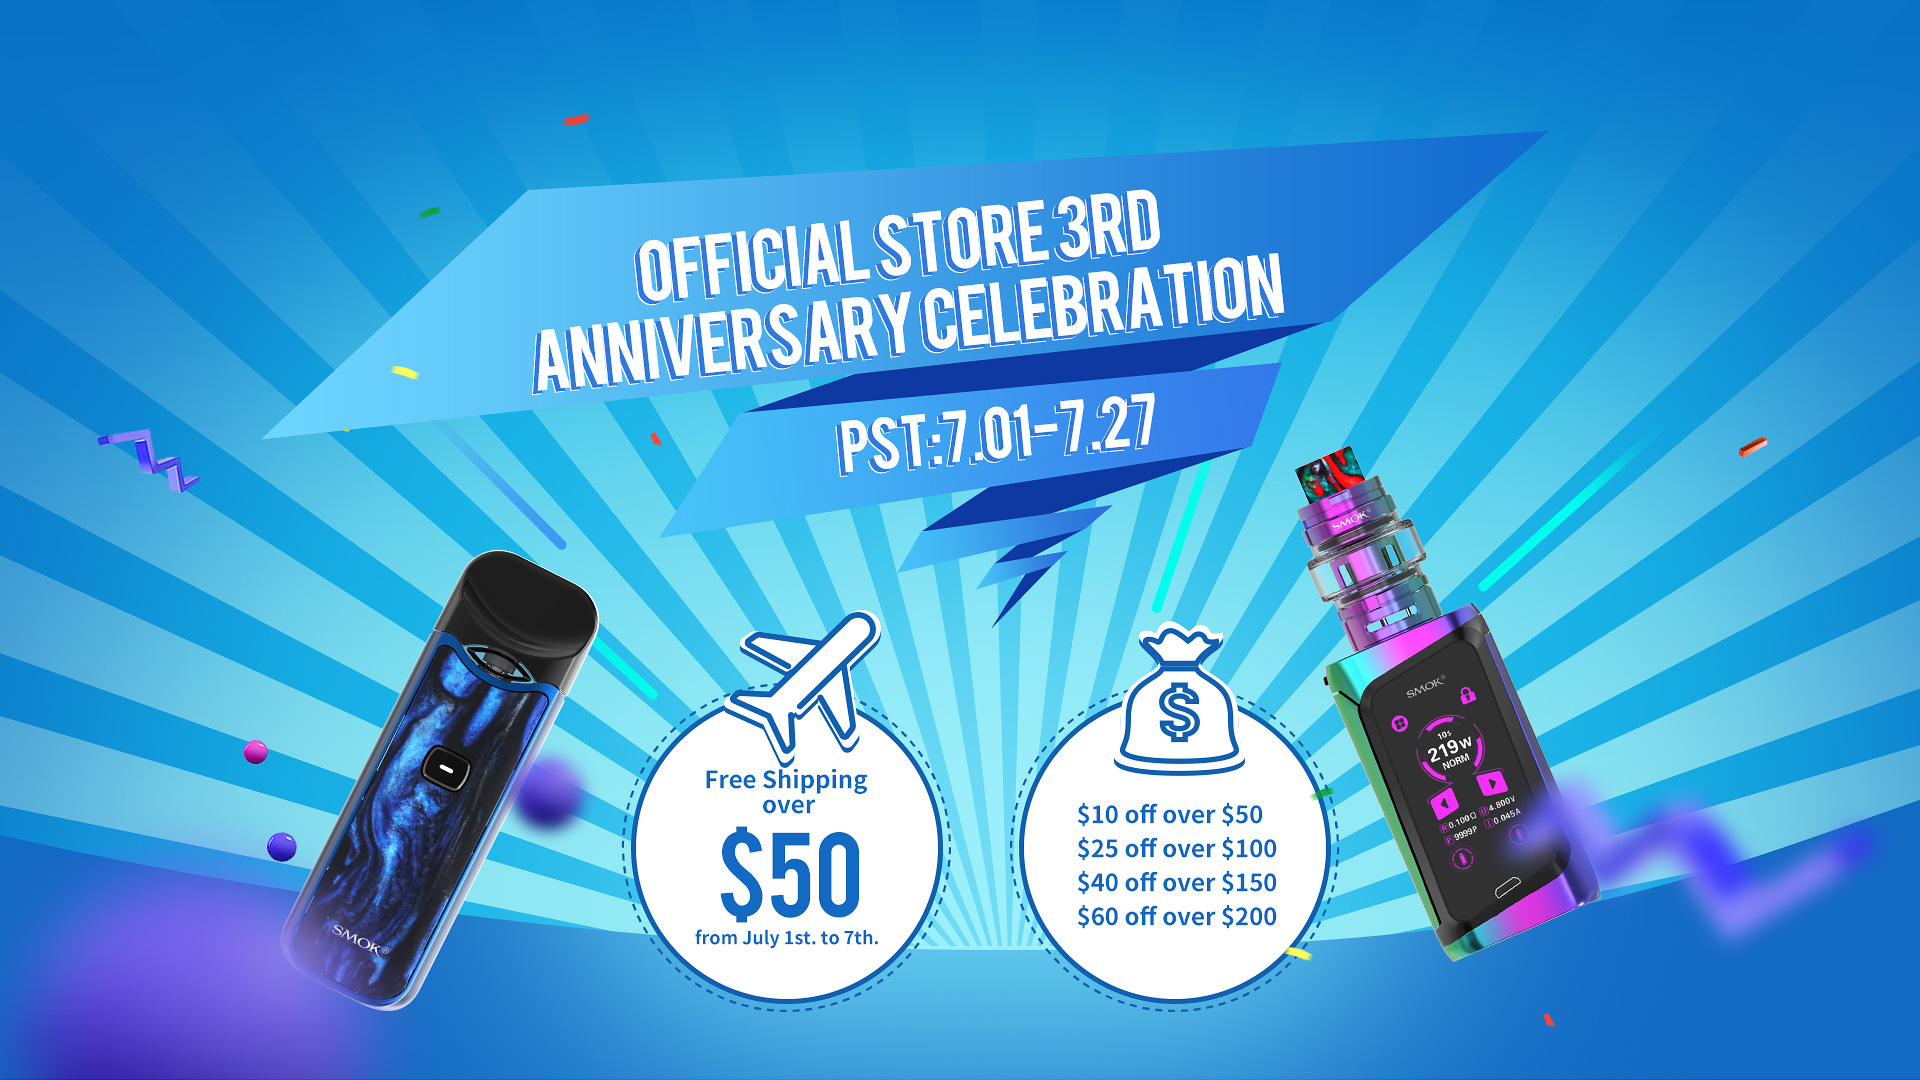 Official Store 3rd Anniversary Celebration - SMOK